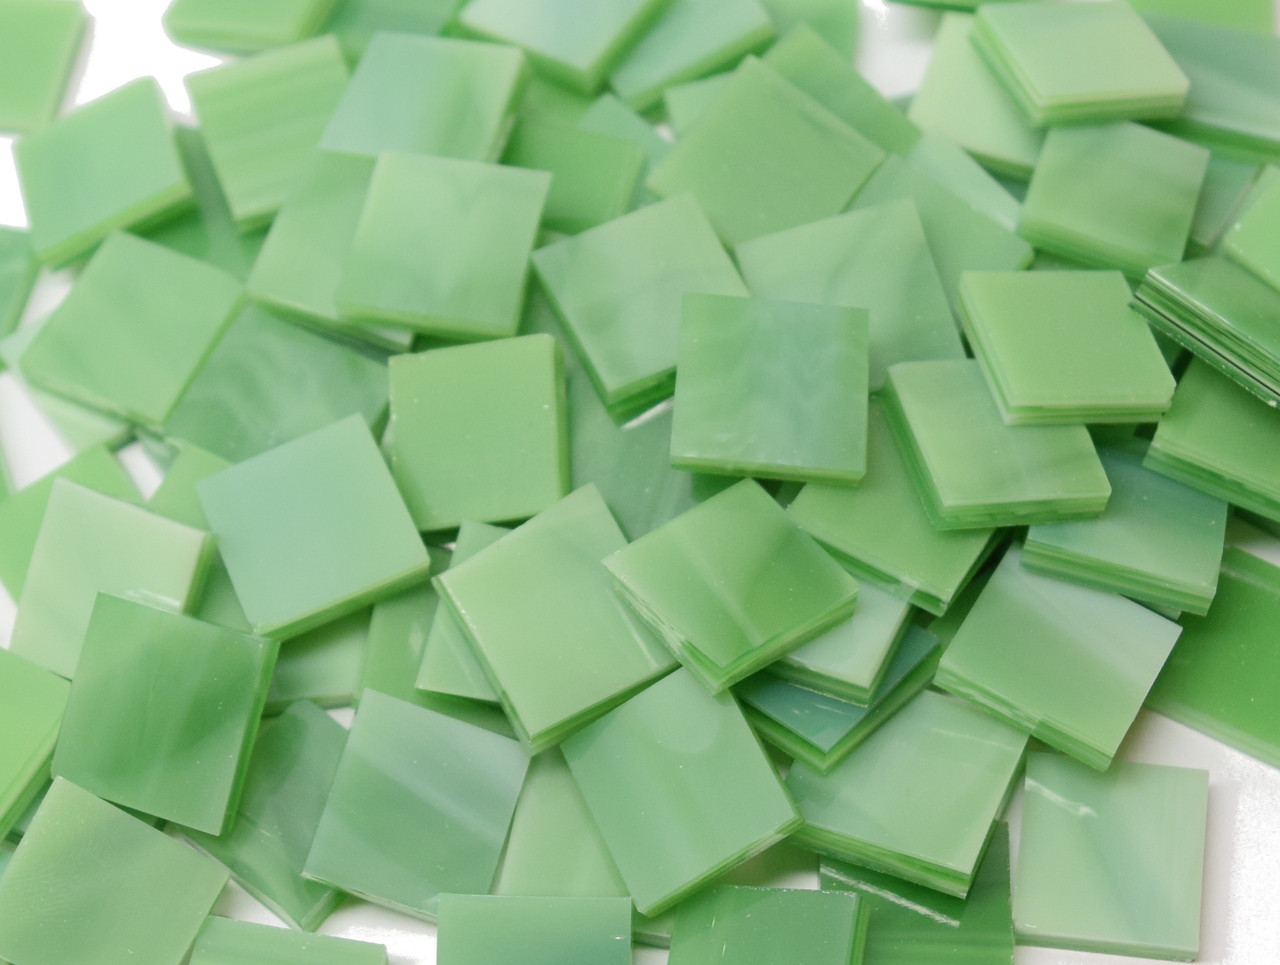 """3/4"""" x 3/4"""" Grassy Green Wispy Handcut Stained Glass Mosaic Tiles, COE 96 (40 tiles)"""